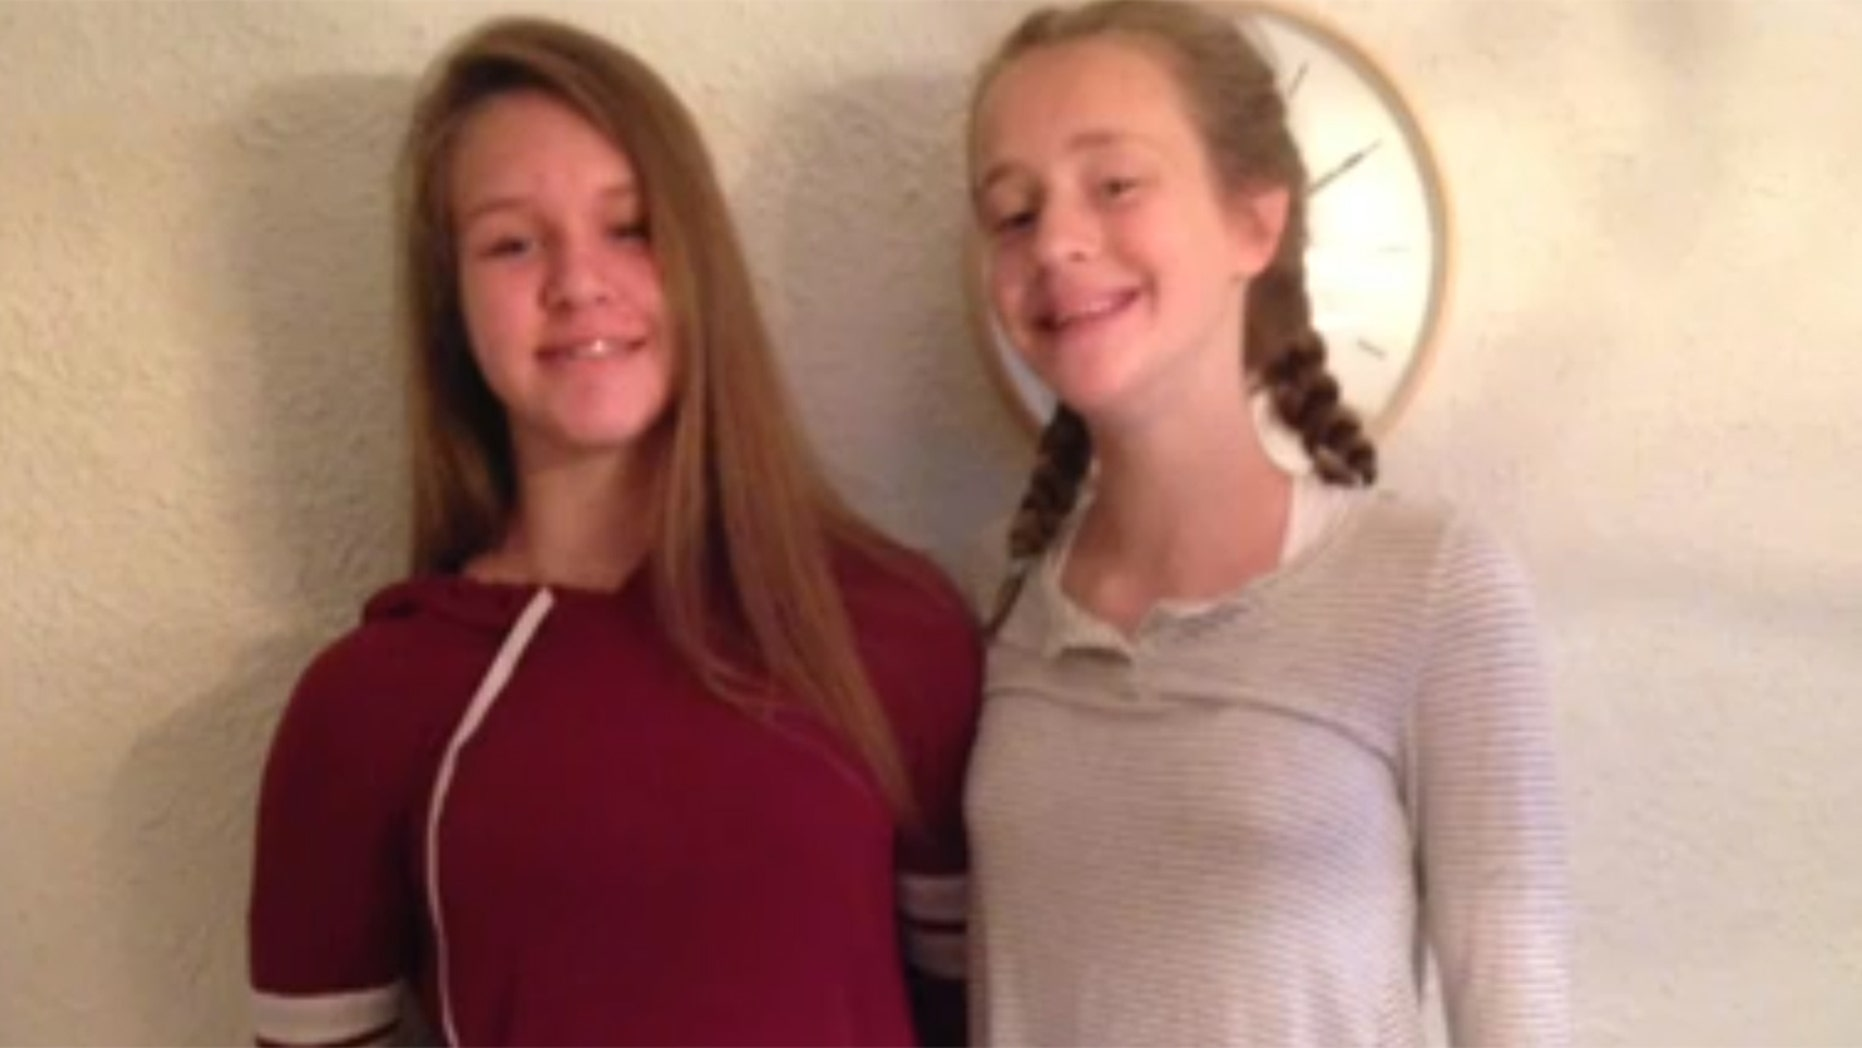 Riley Robinson, pictured right, was killed and her sister severely injured after the ATV they were riding on crashed into trees.